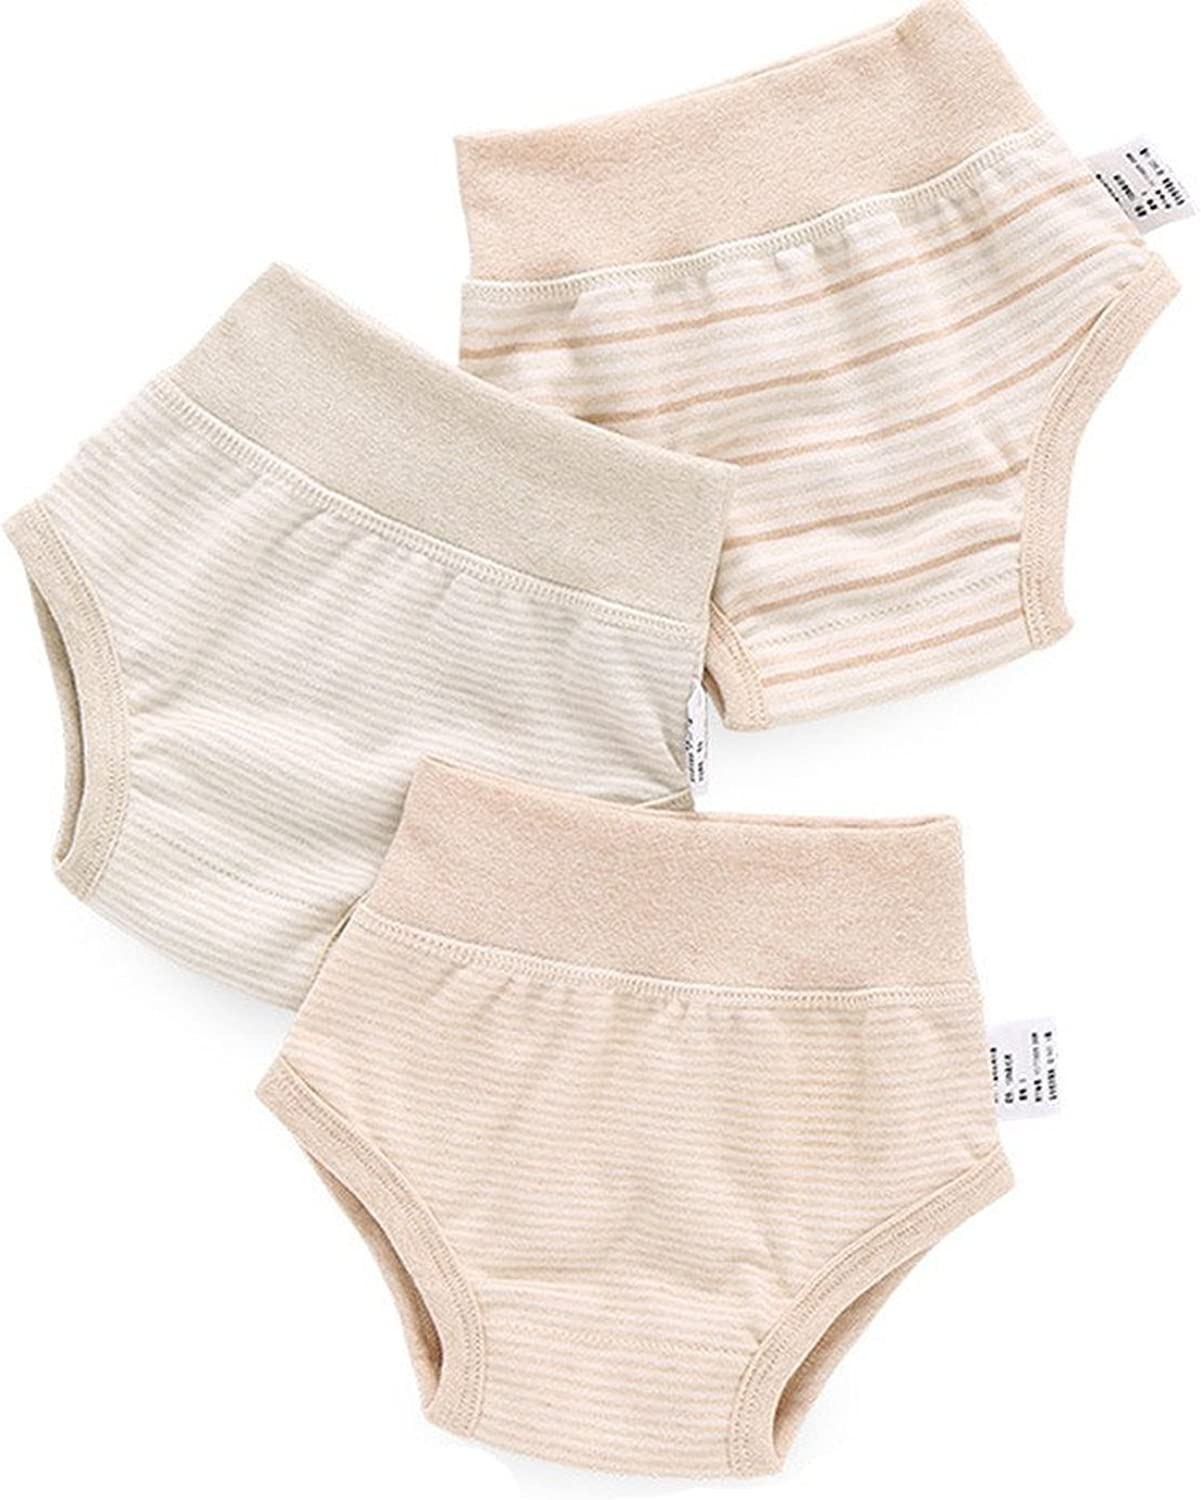 Gemini Fairy Baby Underwear 3 Organic 2021new shipping Limited time sale free Pants Cotton Pack